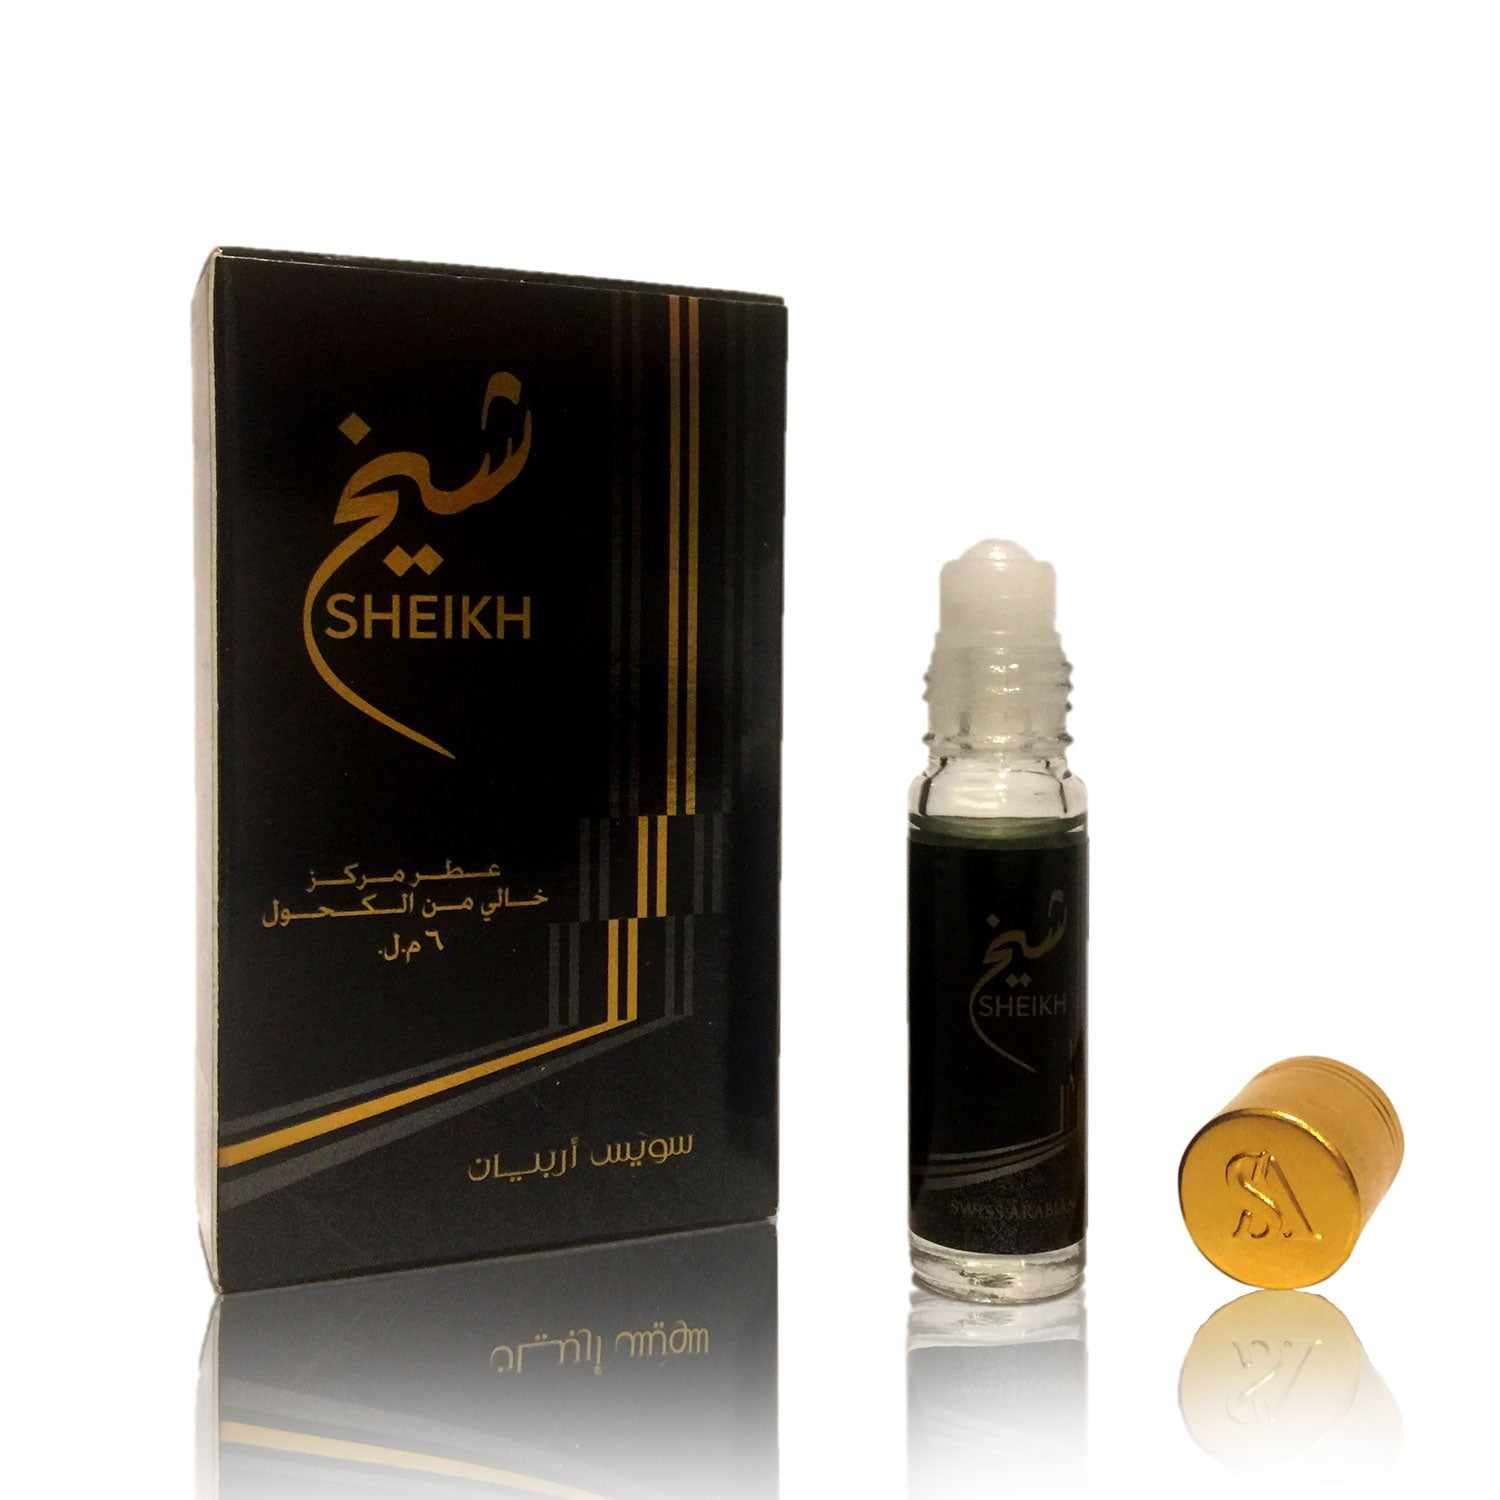 SHEIKH, Roll On Perfume Oil 6 mL (.2 oz) | Musk, Woody, Aquatic and Citrus Notes